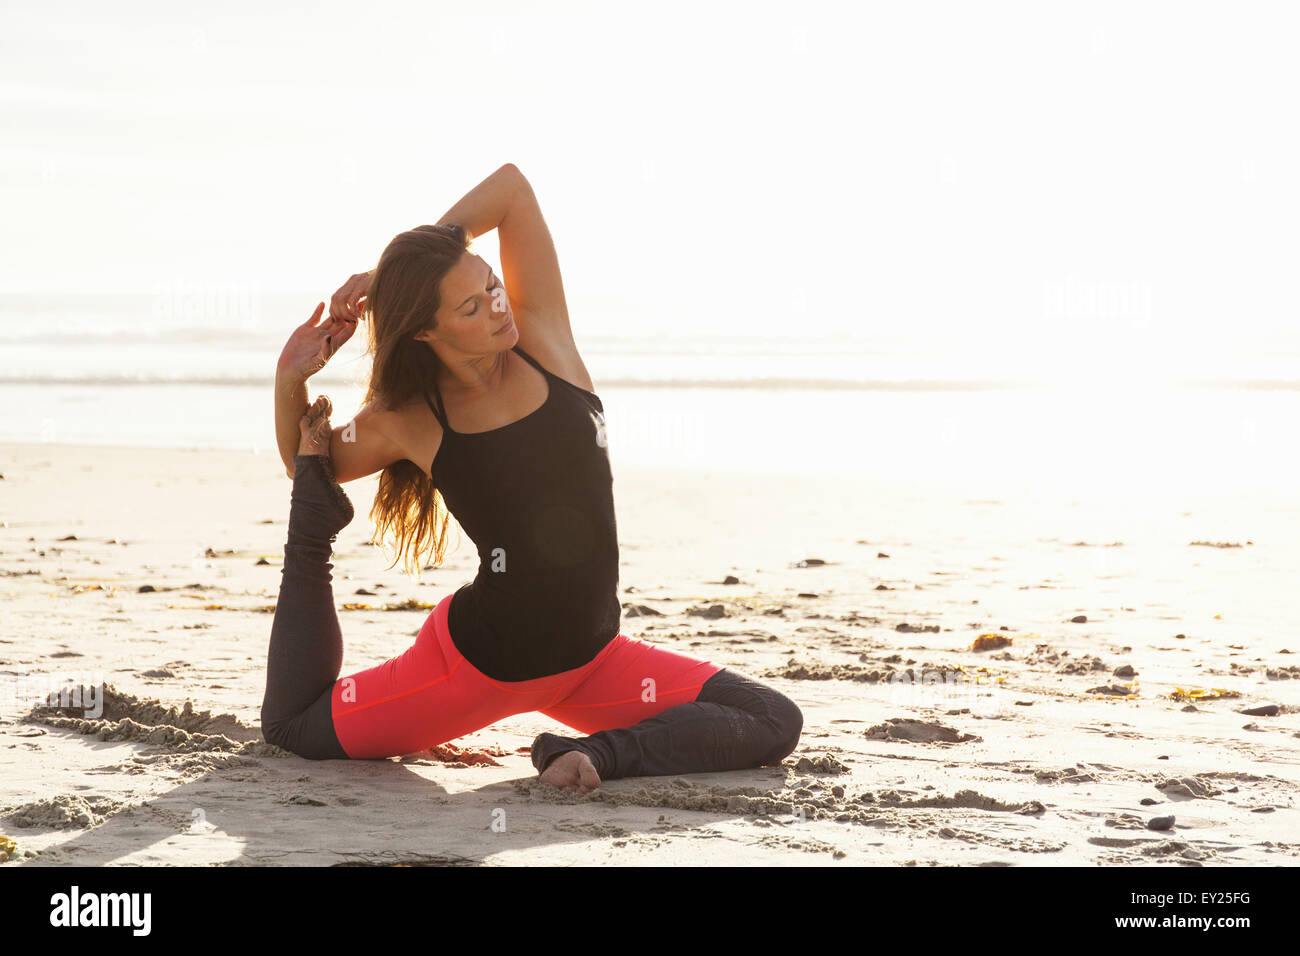 Woman in yoga pose sur plage Photo Stock